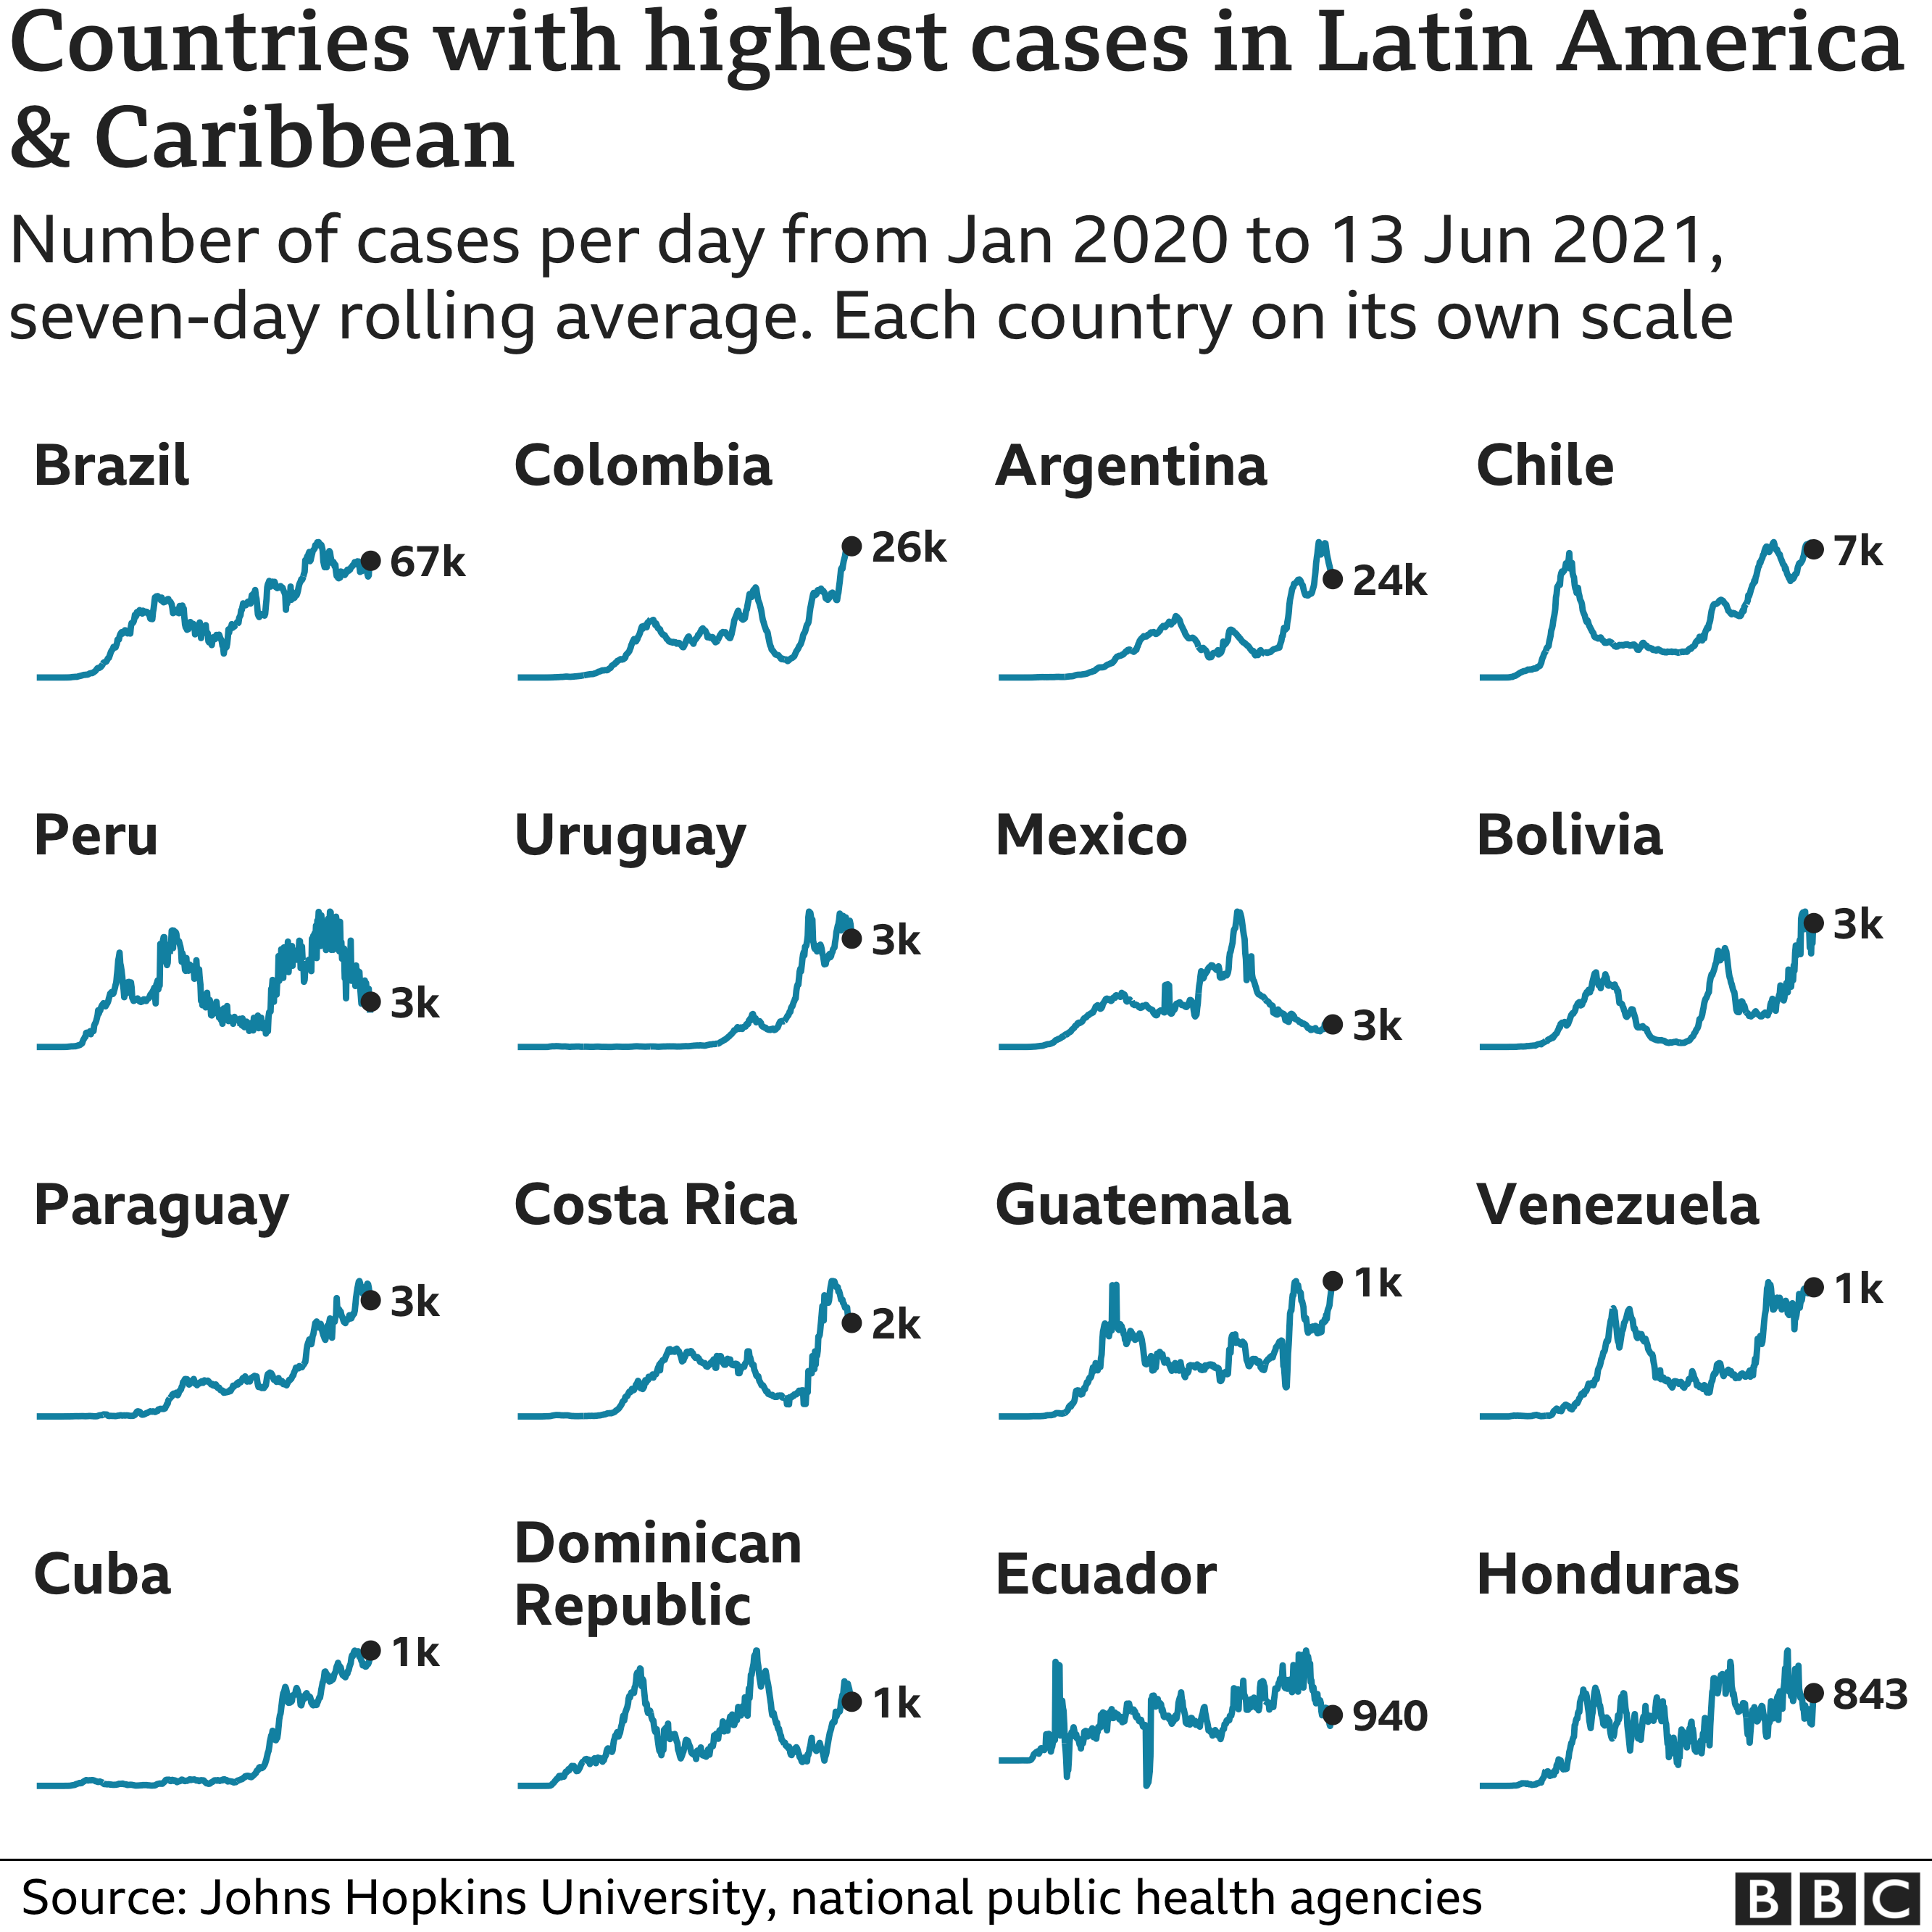 Graphs of countries with the highest cases in Latin America & Caribbean, showing Brazil being the worst